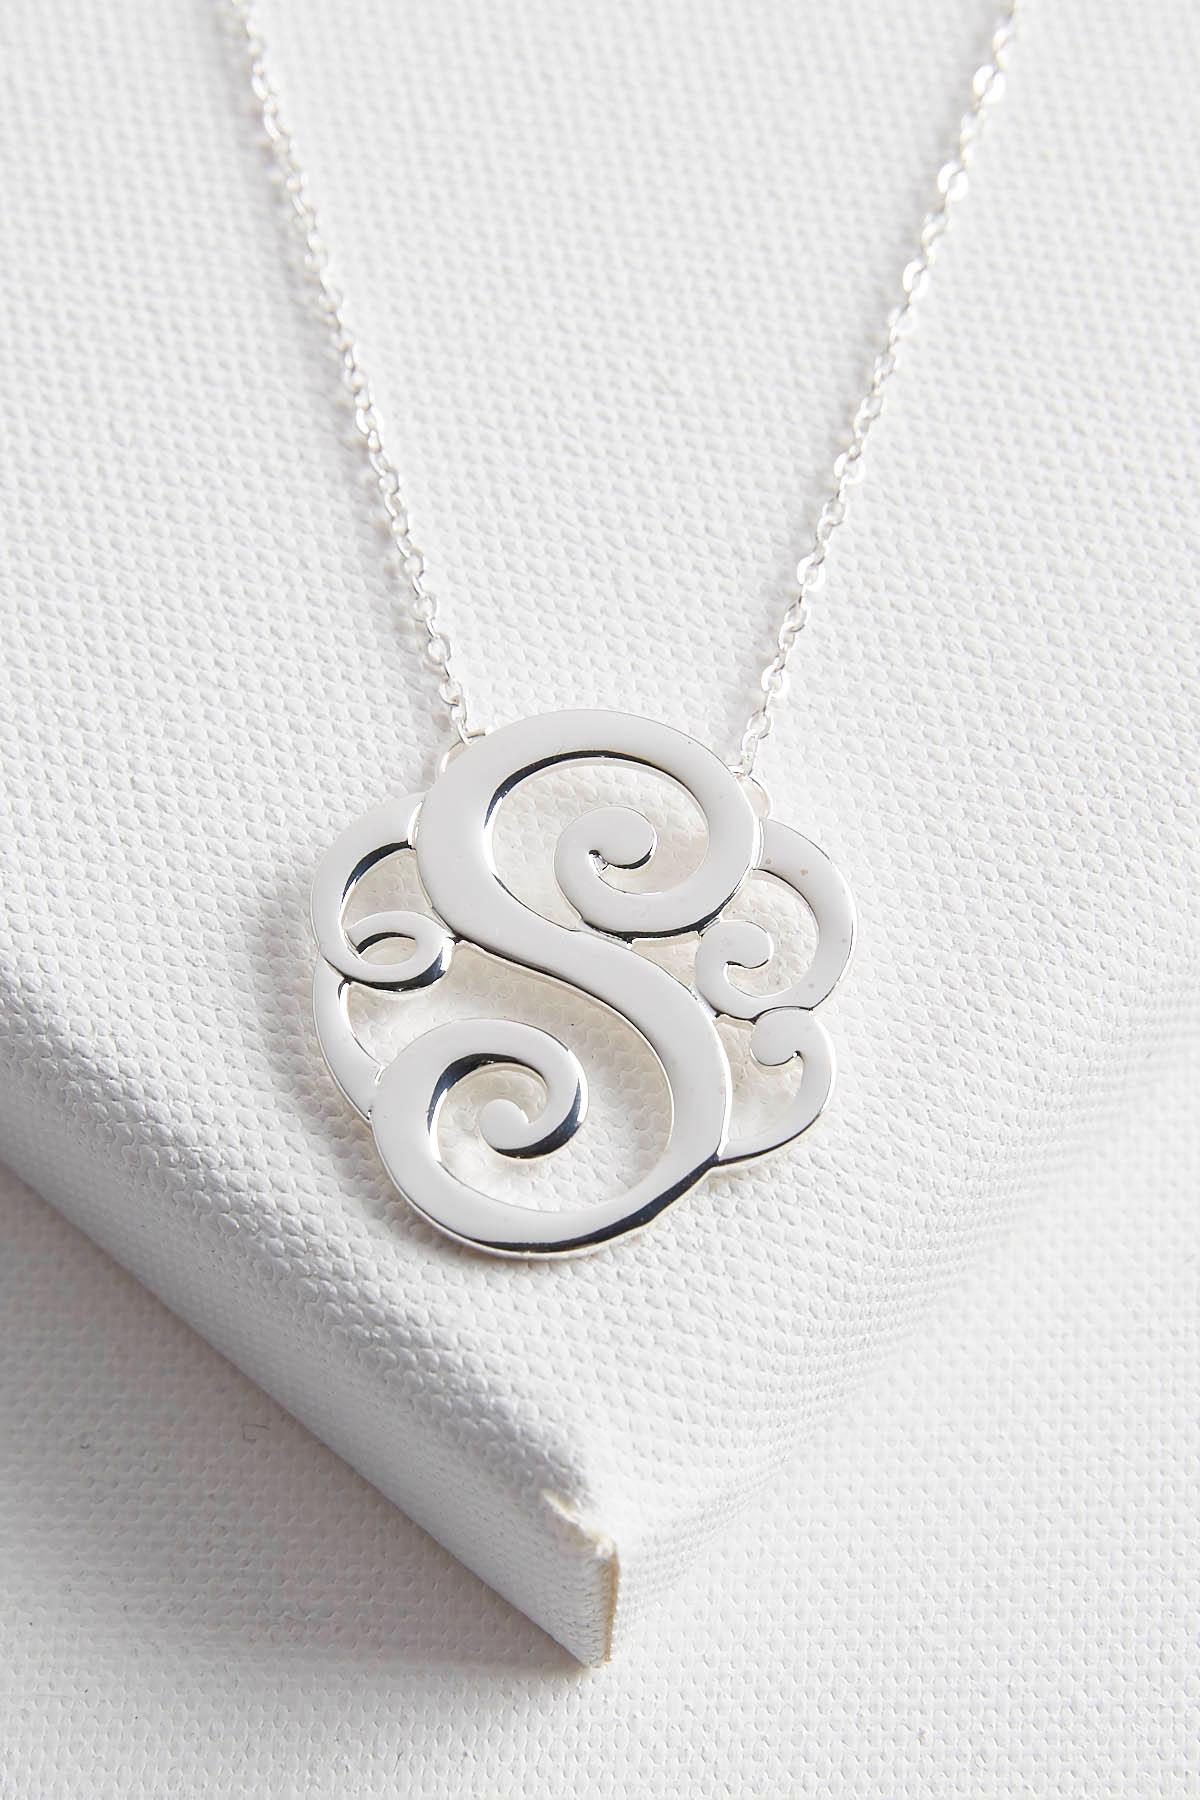 Initial Scroll Brass Pendant Necklace- S